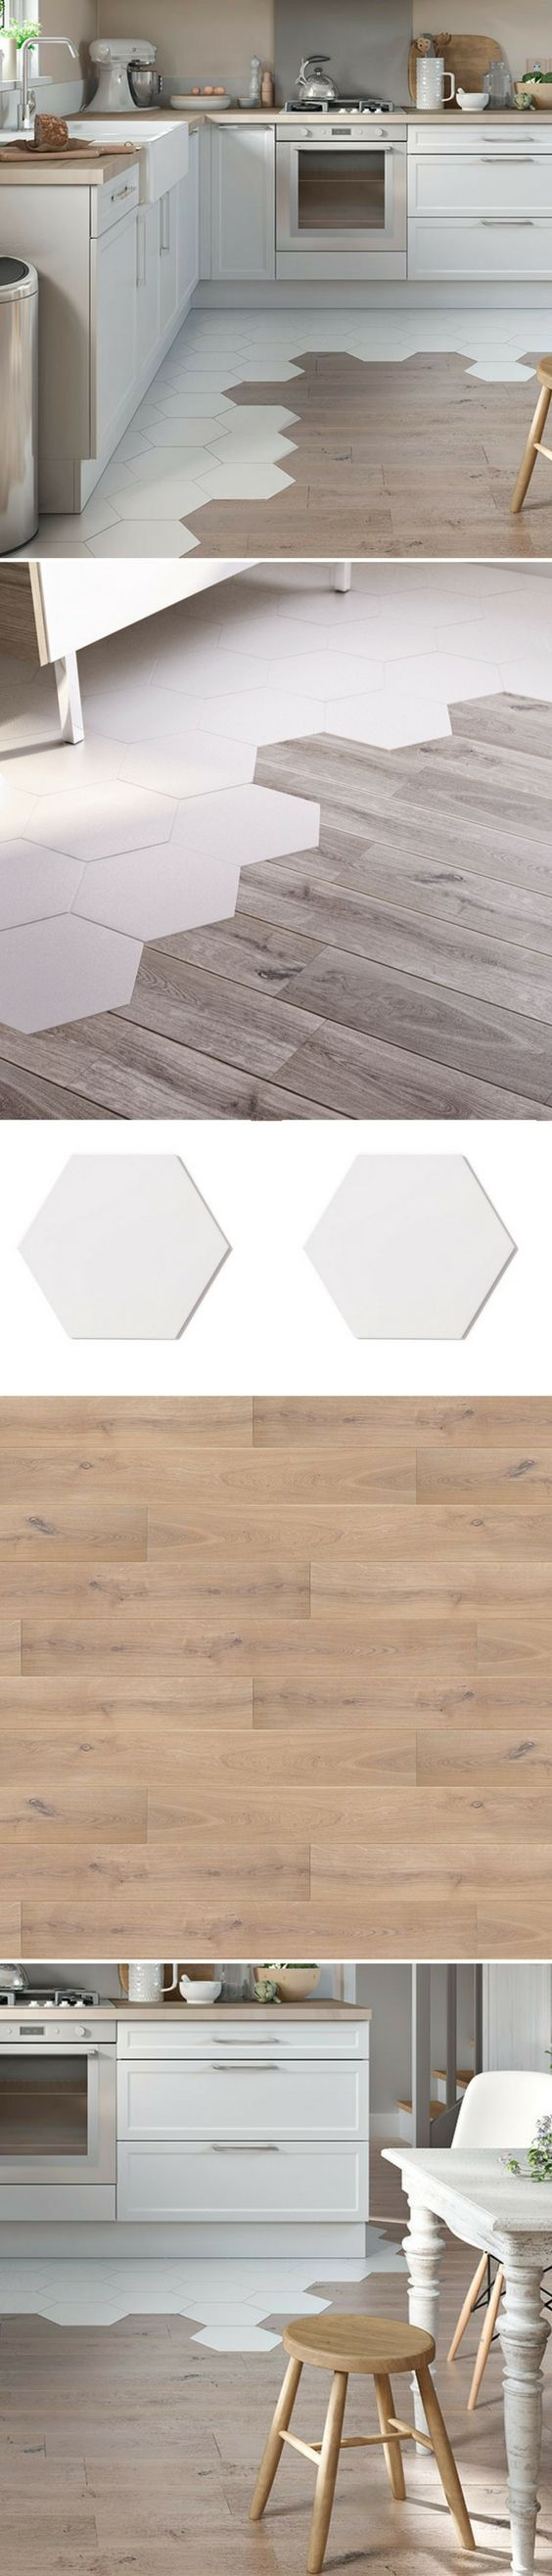 25 easy ideas to care for white wood flooring diy white 25 easy ideas to care for white wood flooring diy dailygadgetfo Choice Image